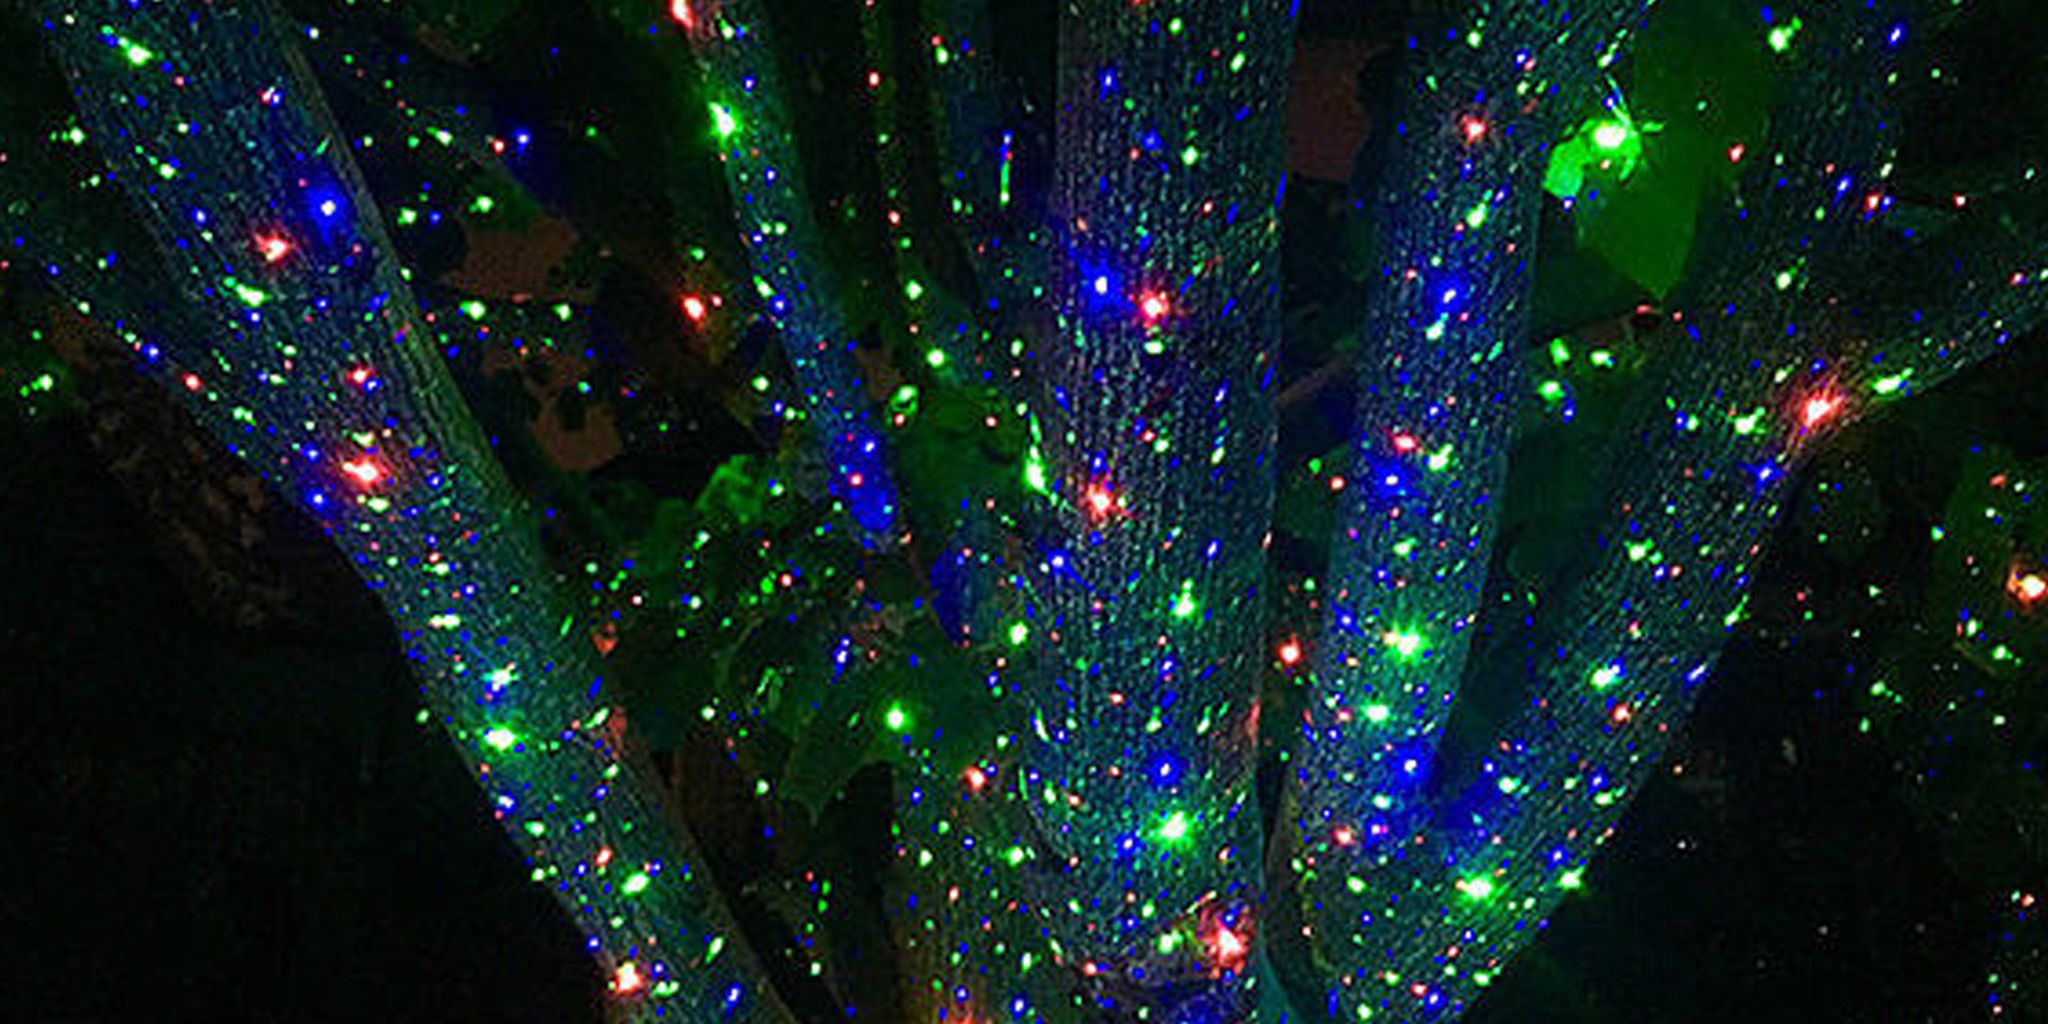 Where To Buy Blue Christmas Lights